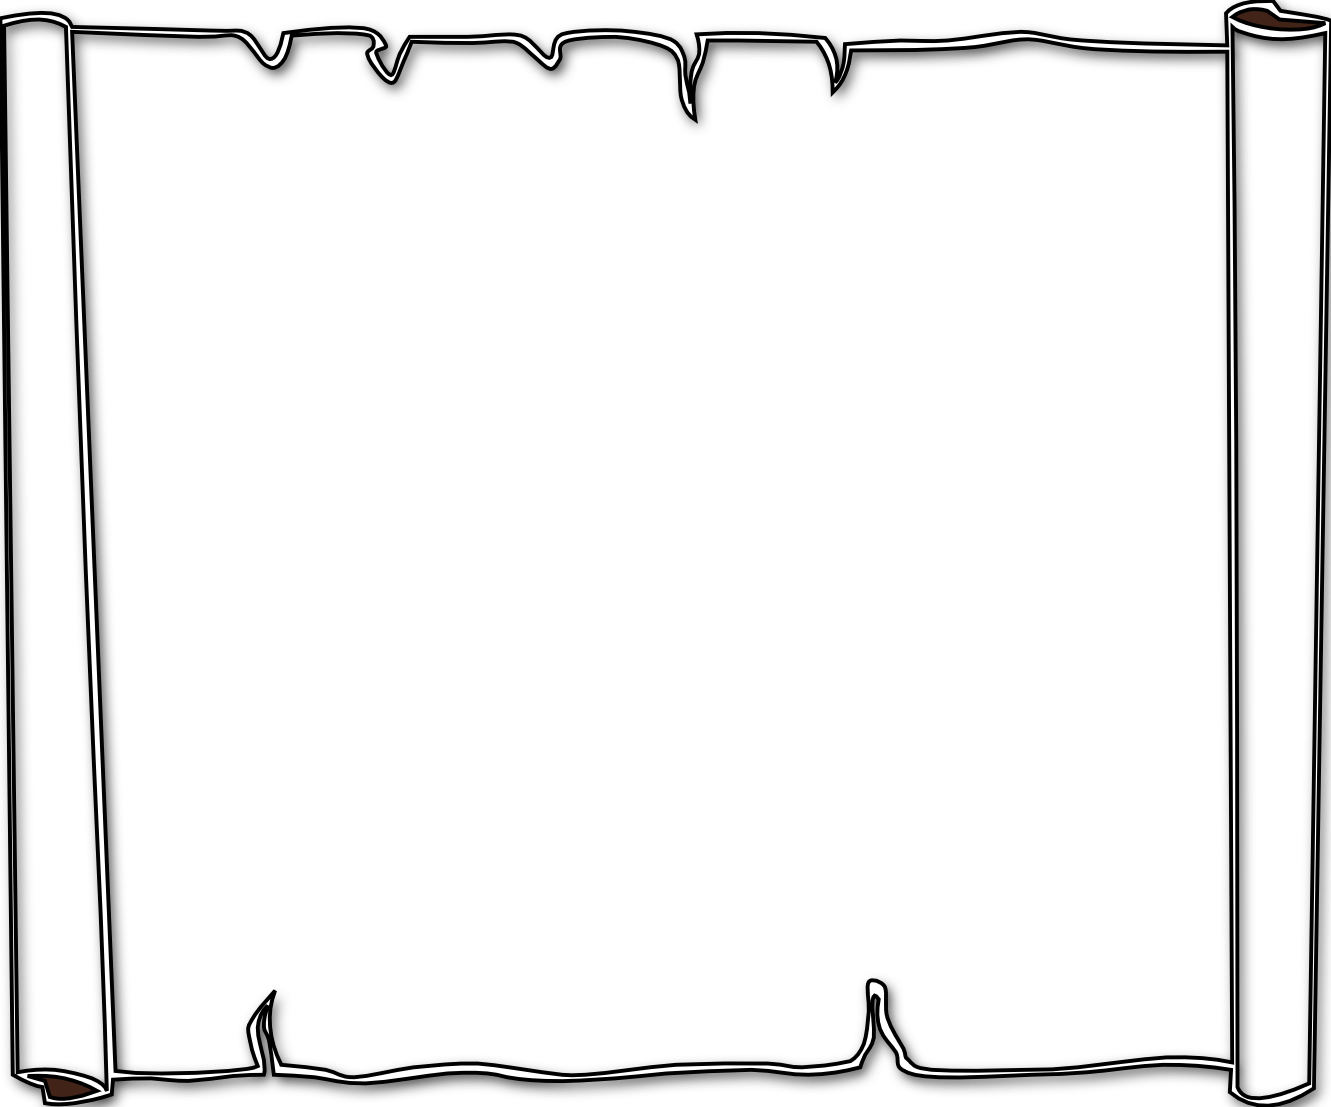 graphic Border free download clip. Halloween clipart black and white borders